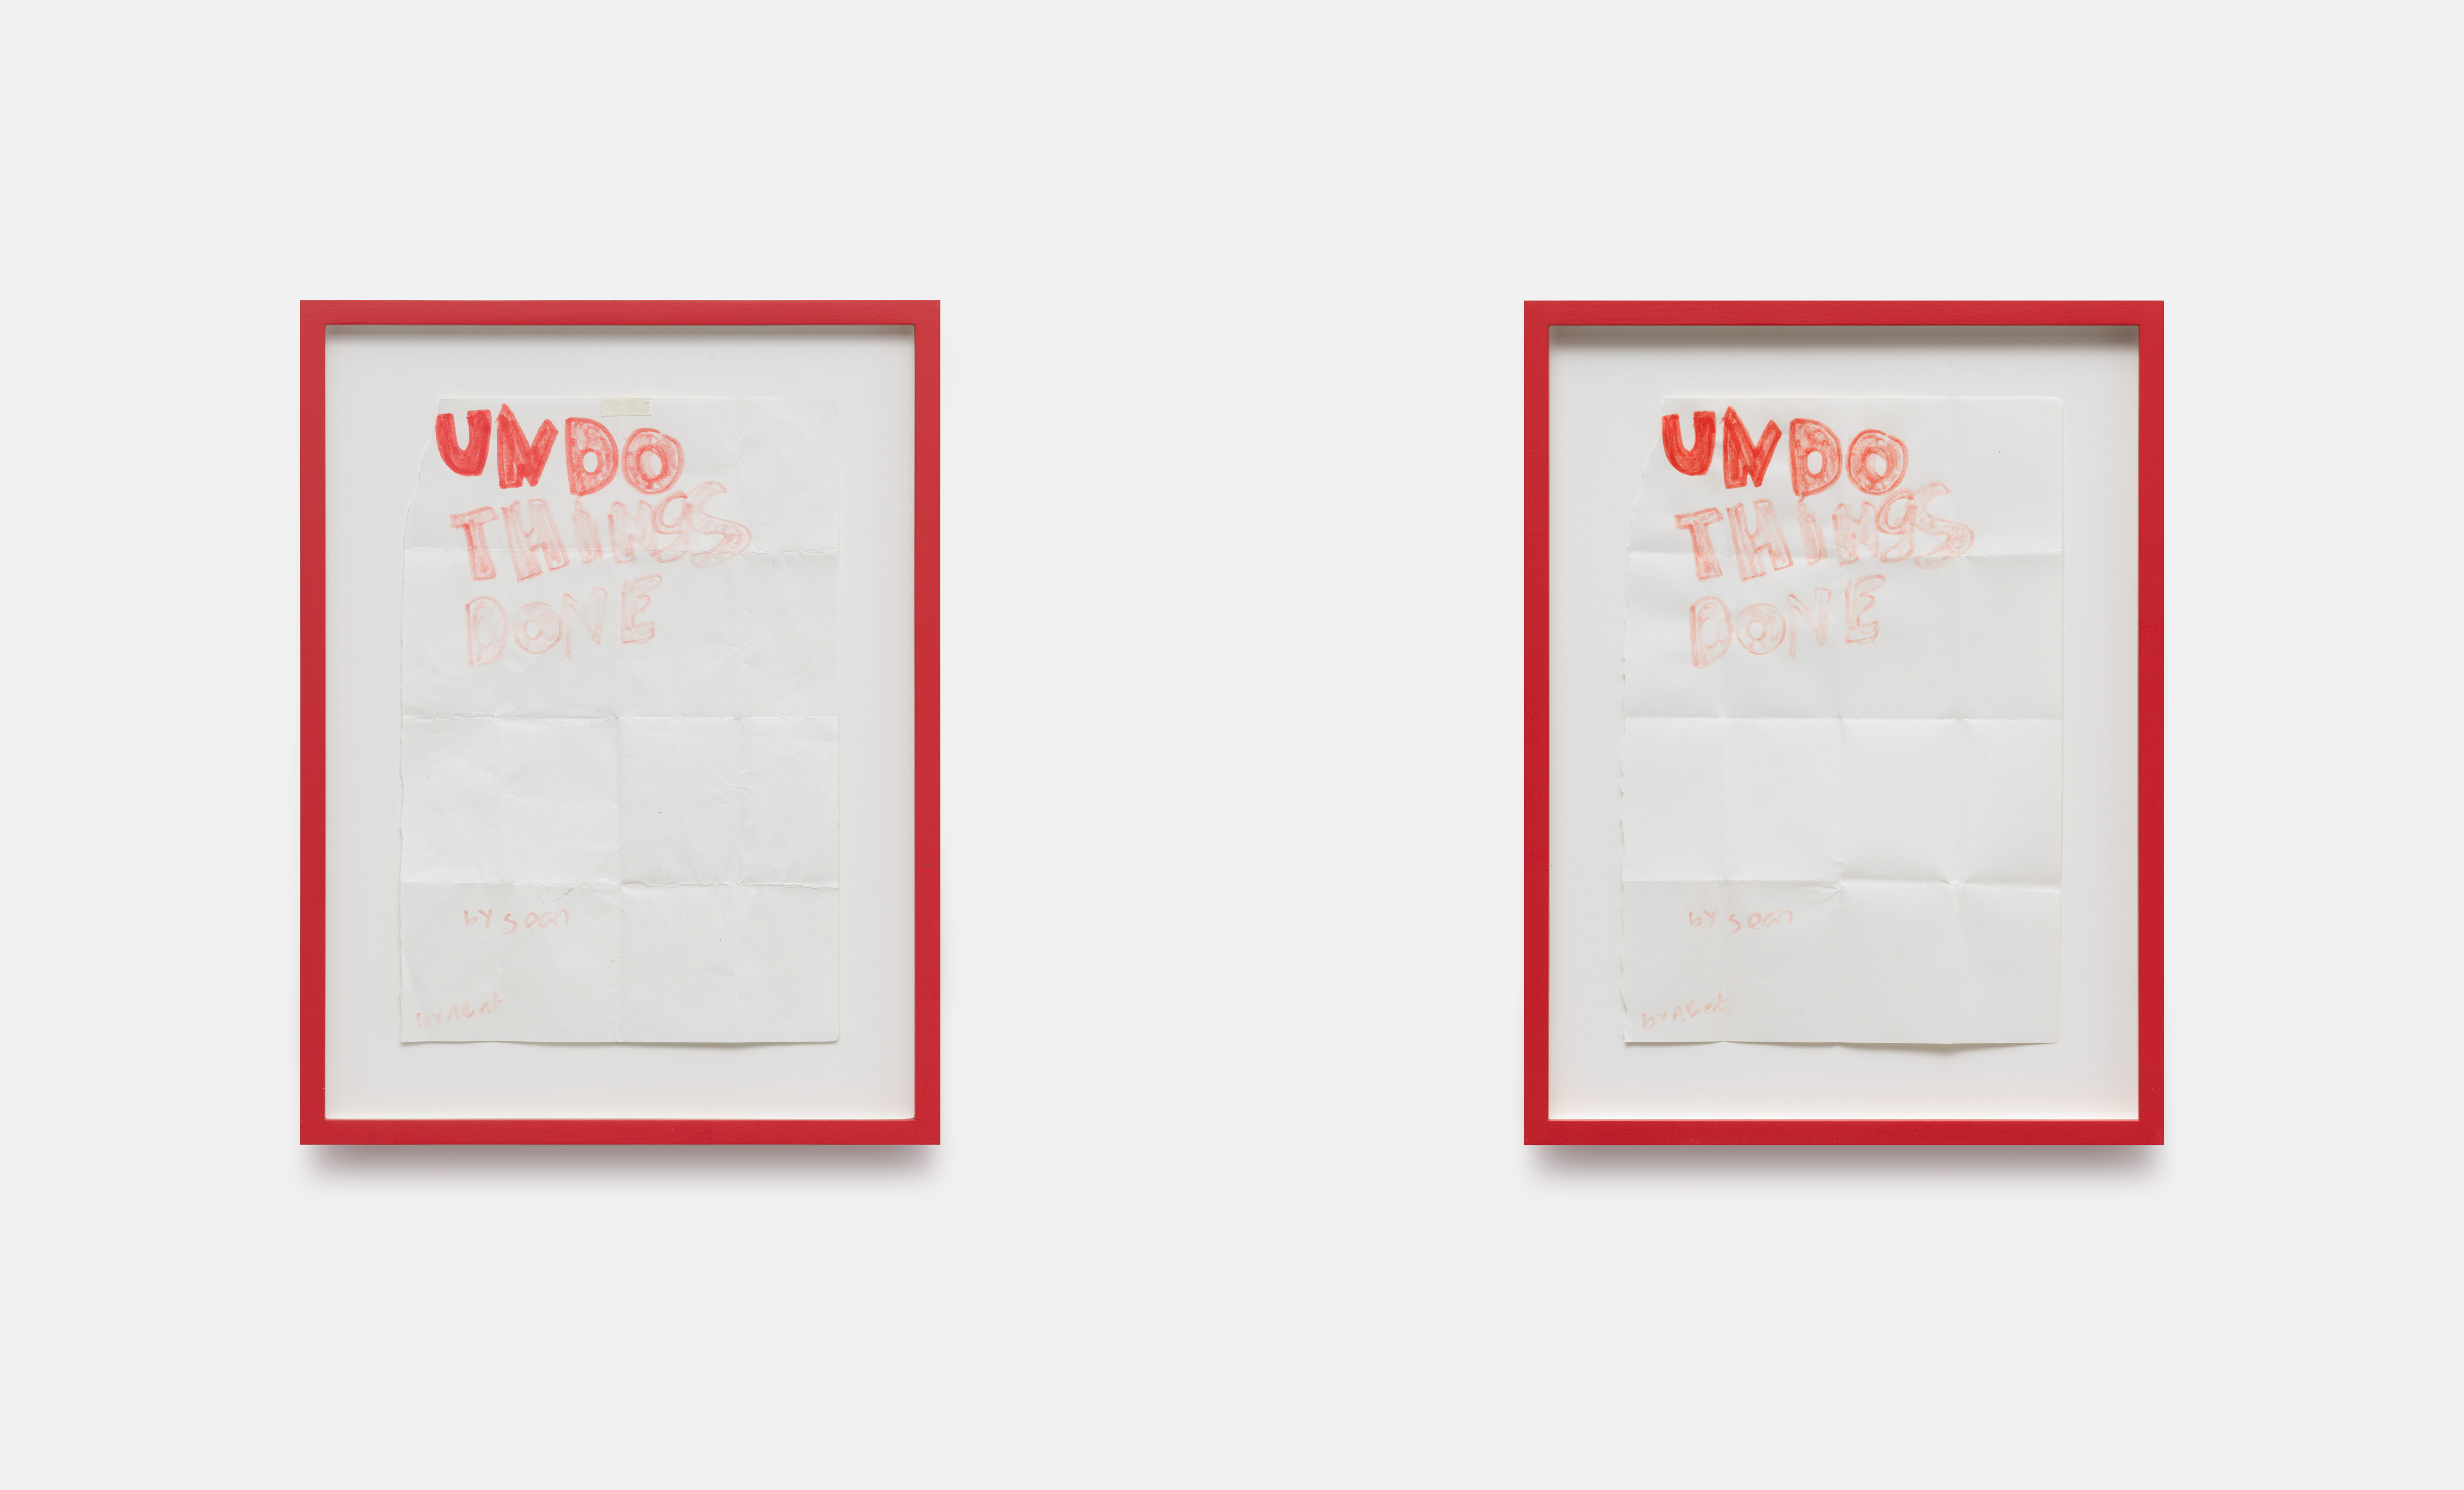 Sean Edwards, 'Undo Things Done (preparatory studies)', 2021. Original ink drawing by the artist's son, watercolour on paper, framed 2 parts: each 25.3×33.7 cm. Photography: Gunter Lepkowski. All images courtesy of the artist and Tanya Leighton, Berlin.